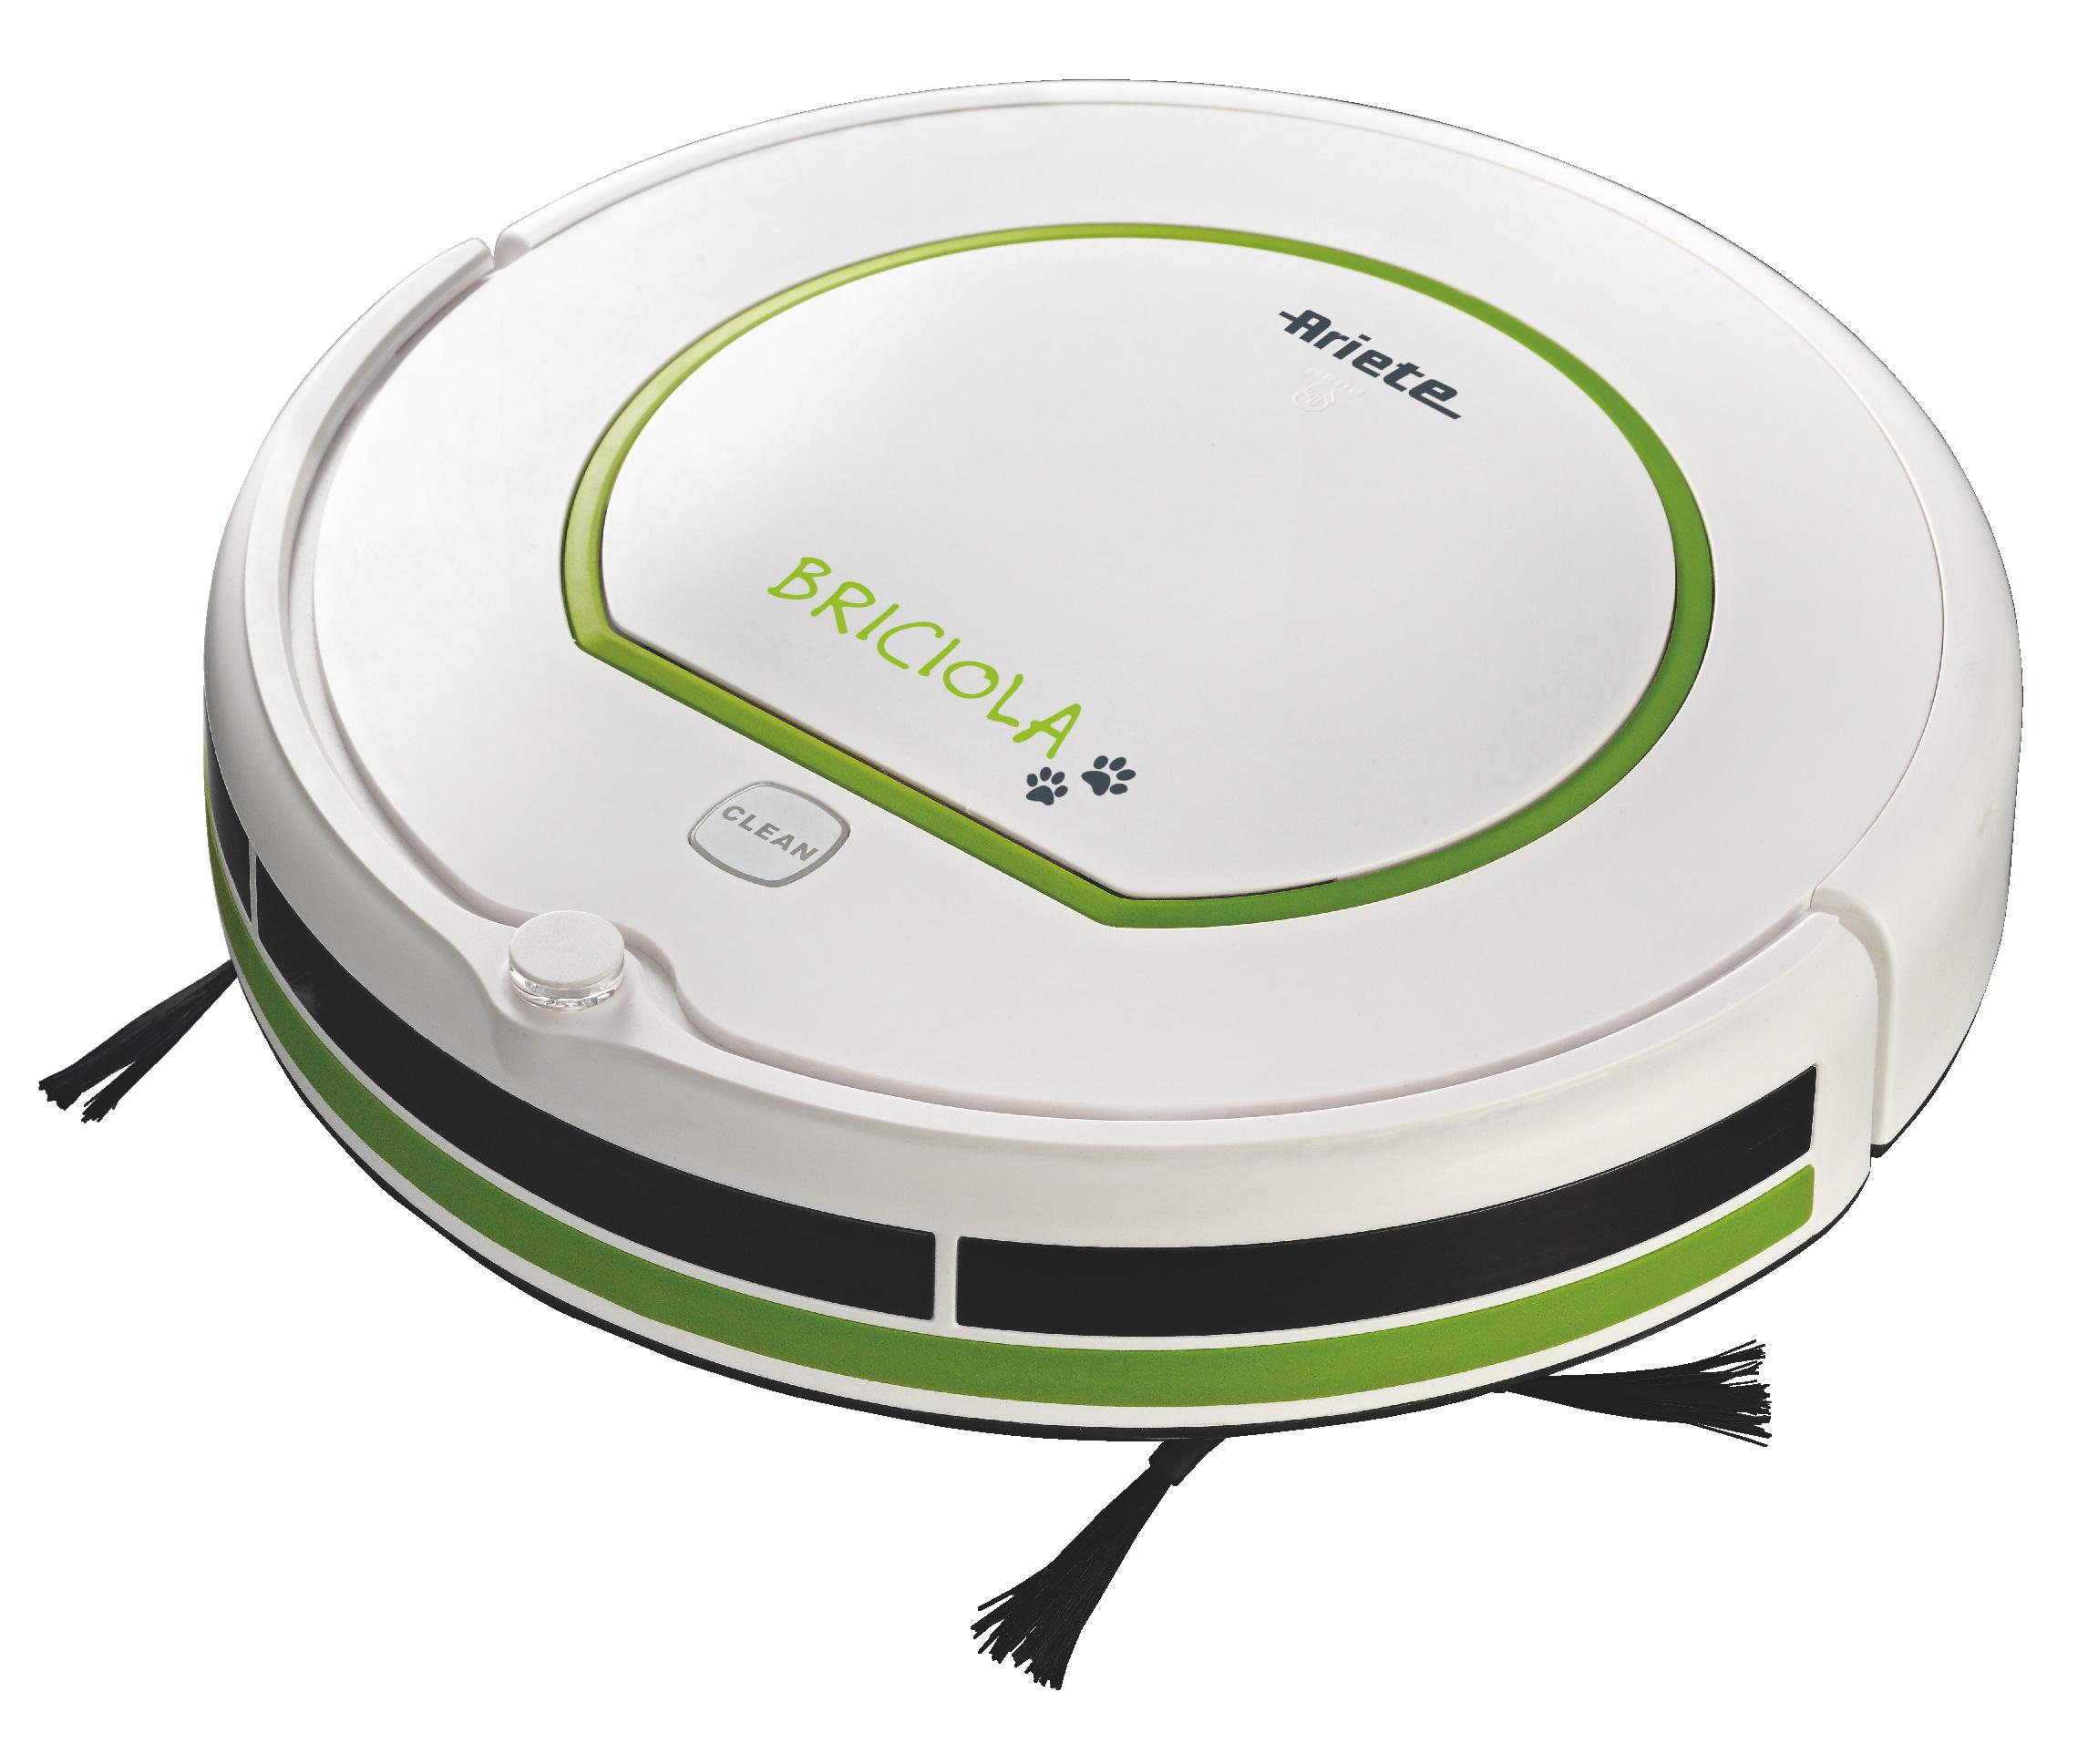 vacuum overstock shipping roomba vacuuming floor cleaner garden irobot product free robotic home robot today